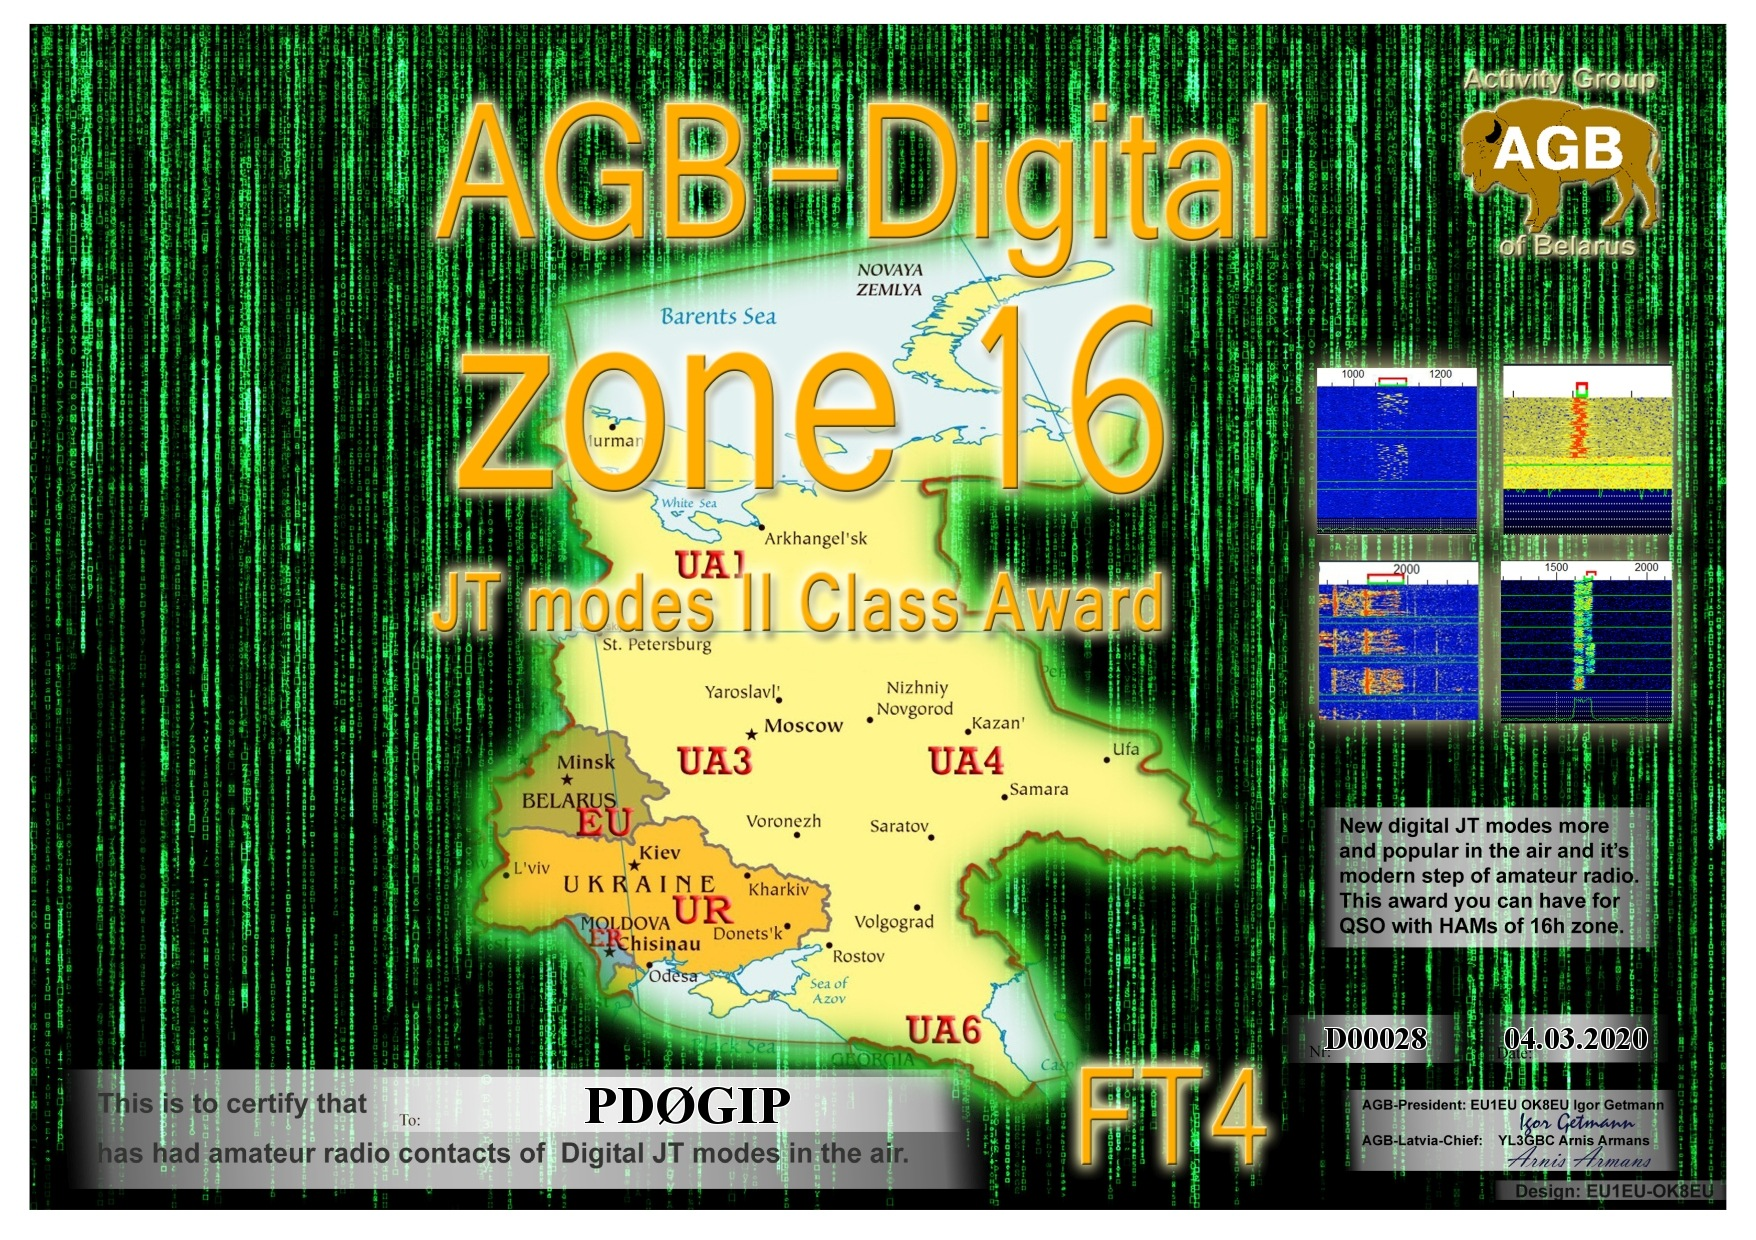 PD0GIP ZONE16 FT4 II AGB